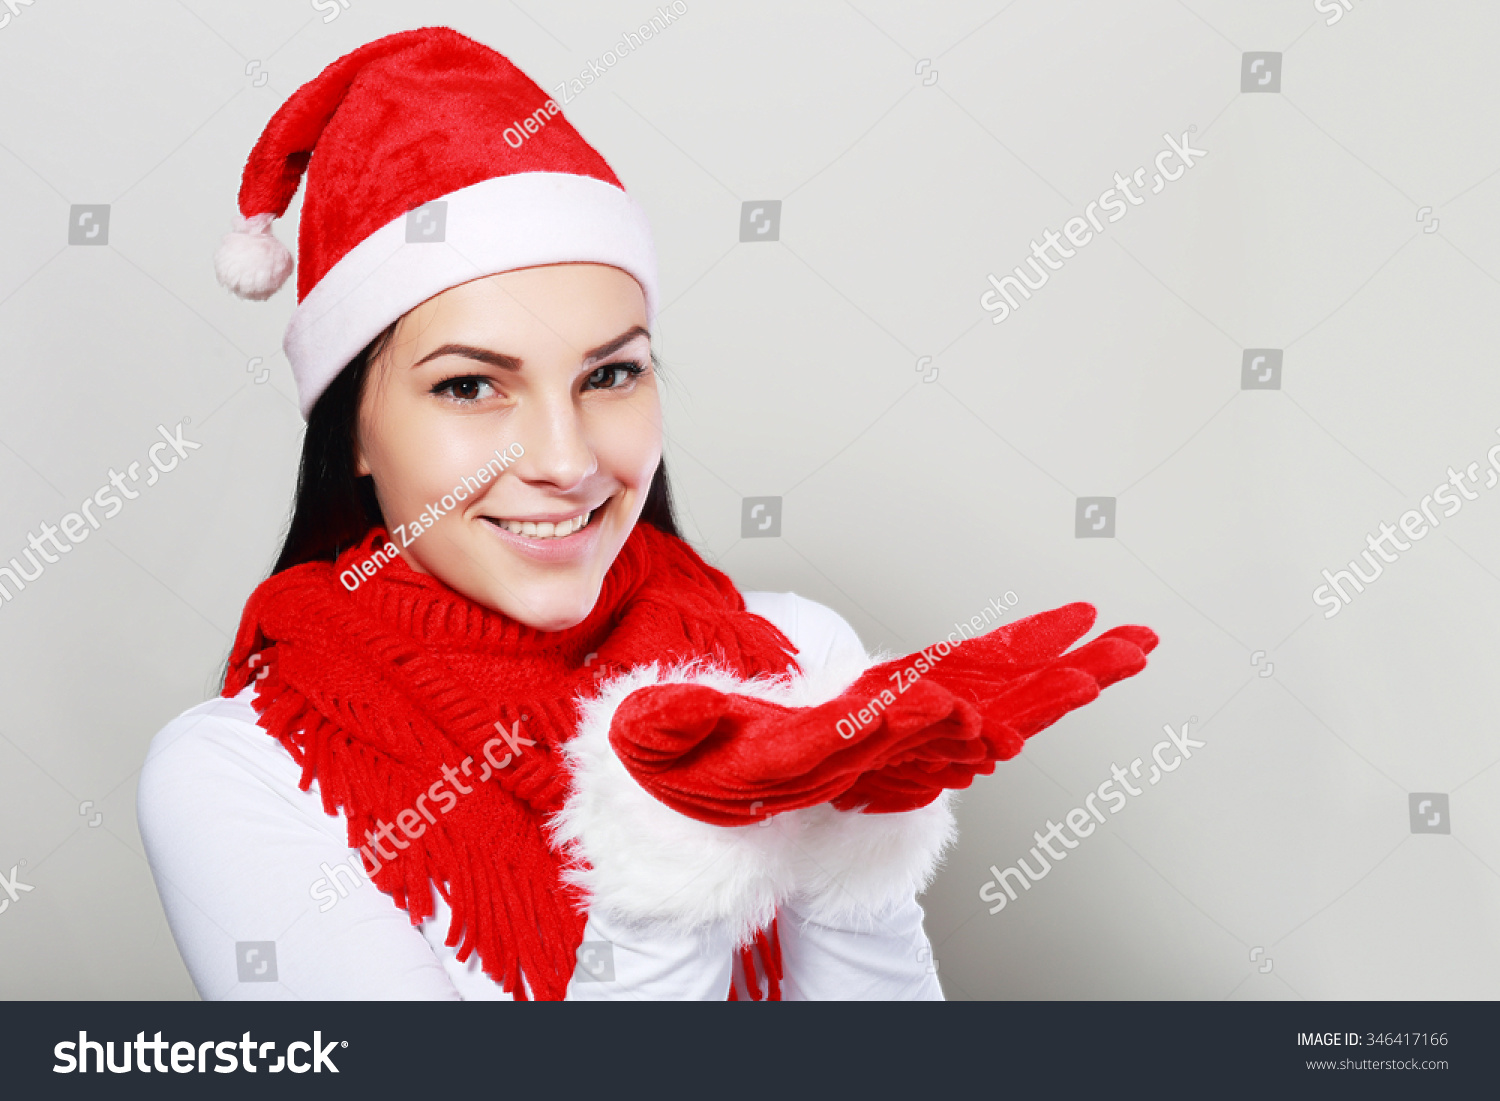 51d7bdea7d647 young christmas woman wearing a santa hat and smiling. Pesenting something  in her hands